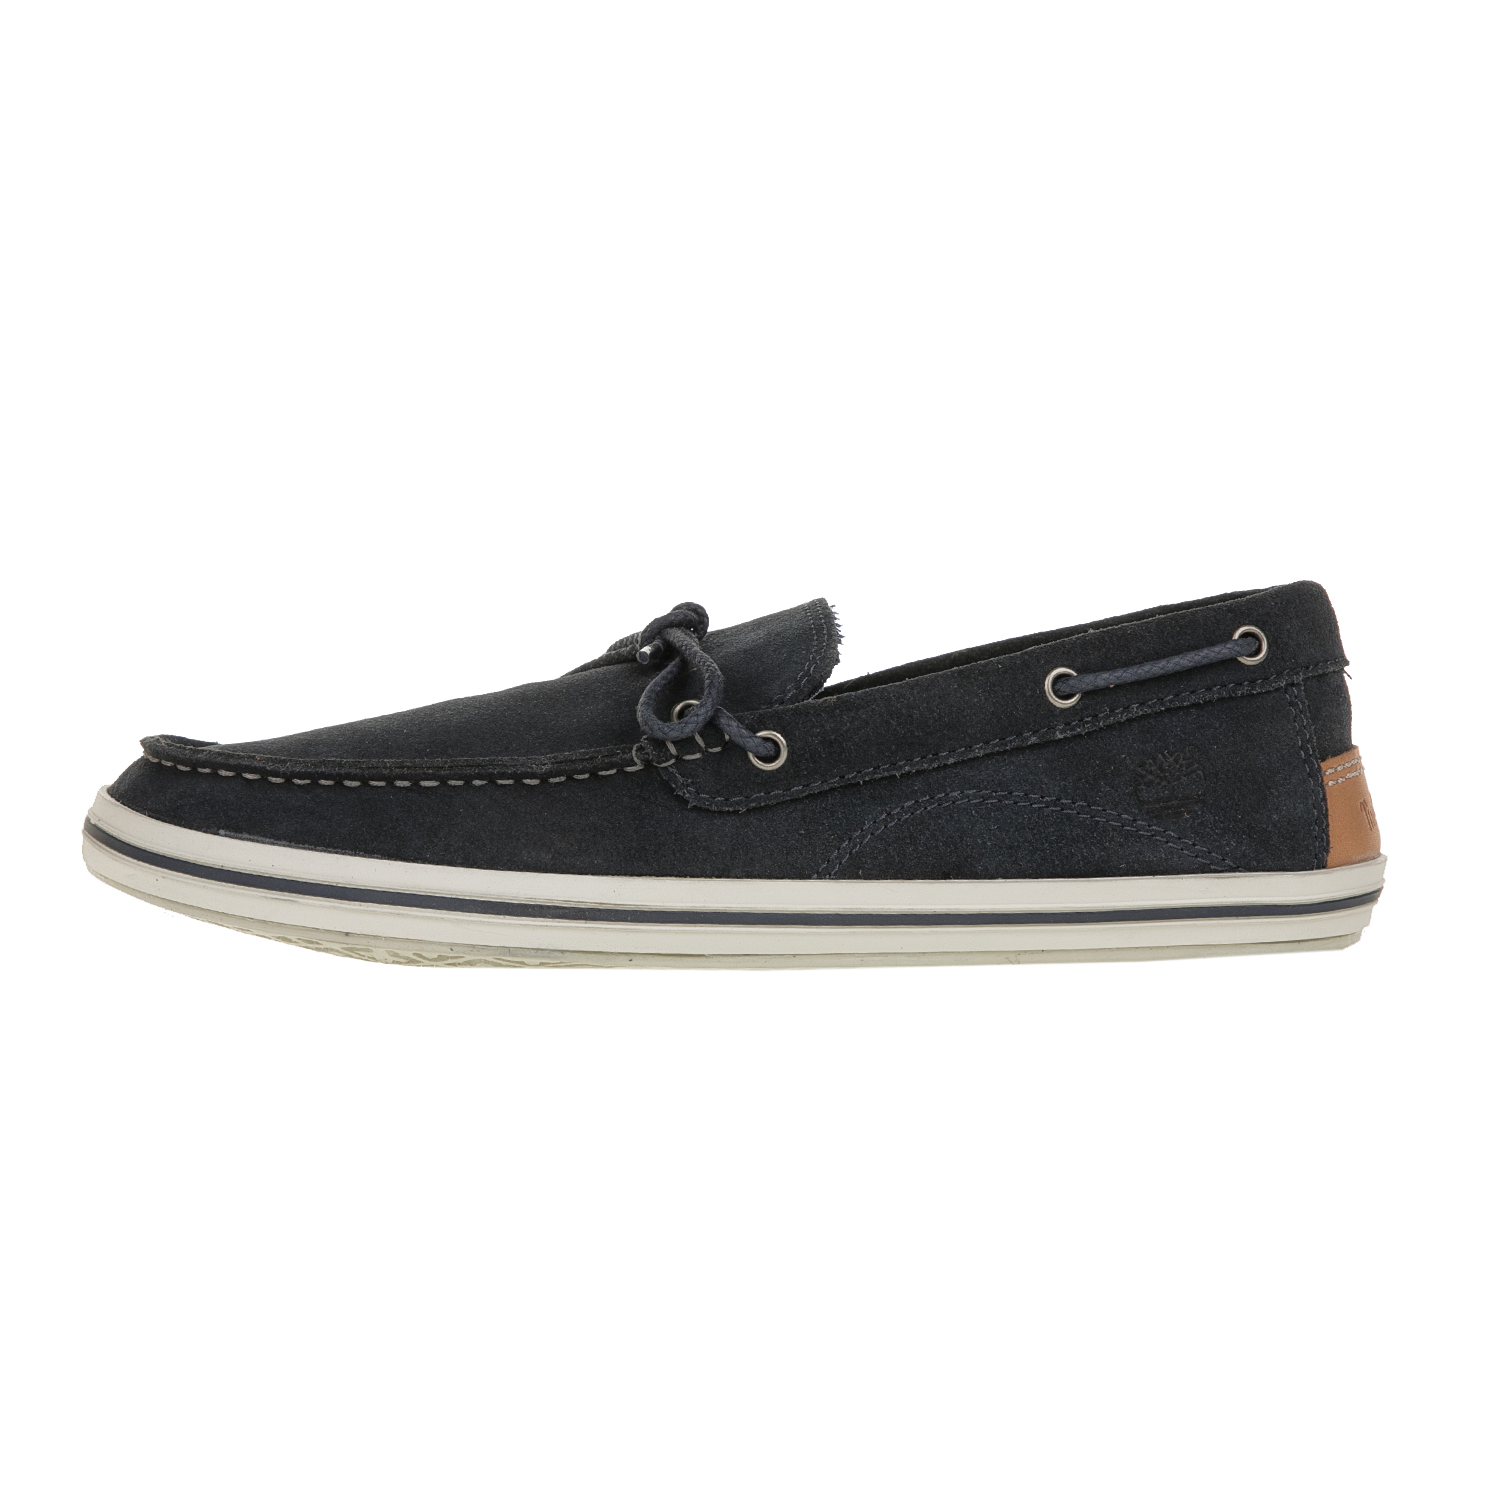 TIMBERLAND - Ανδρικά δερμάτινα boat shoes TIMBERLAND μπλε σκούρα ανδρικά παπούτσια boat shoes